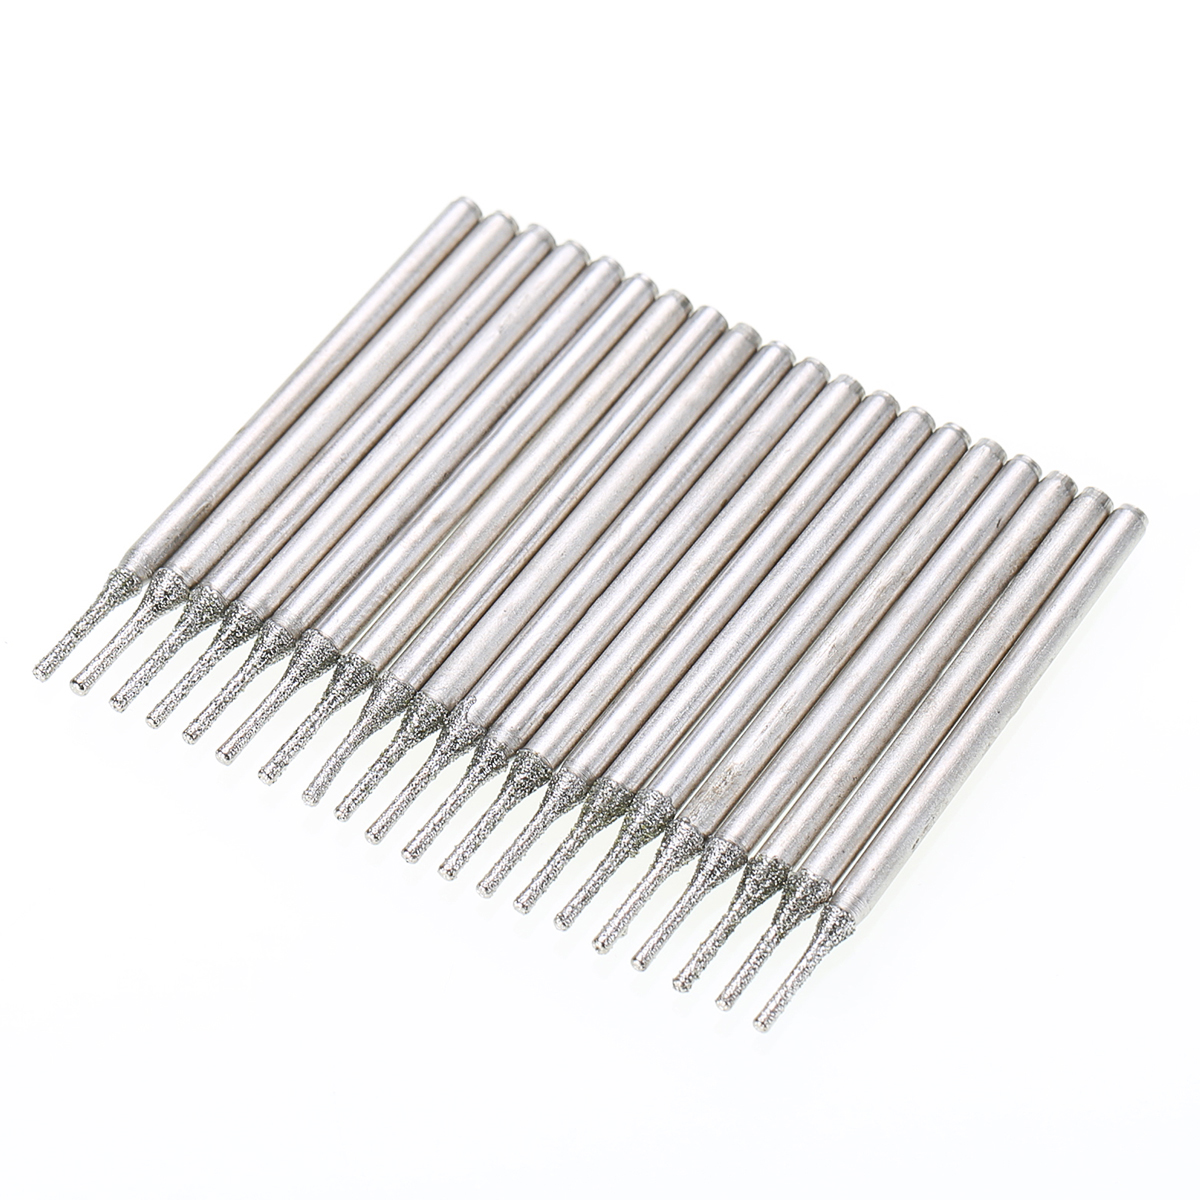 10x Lapidary Diamond Coated Solid Bits Gems Drilling Needle 1mm Silver